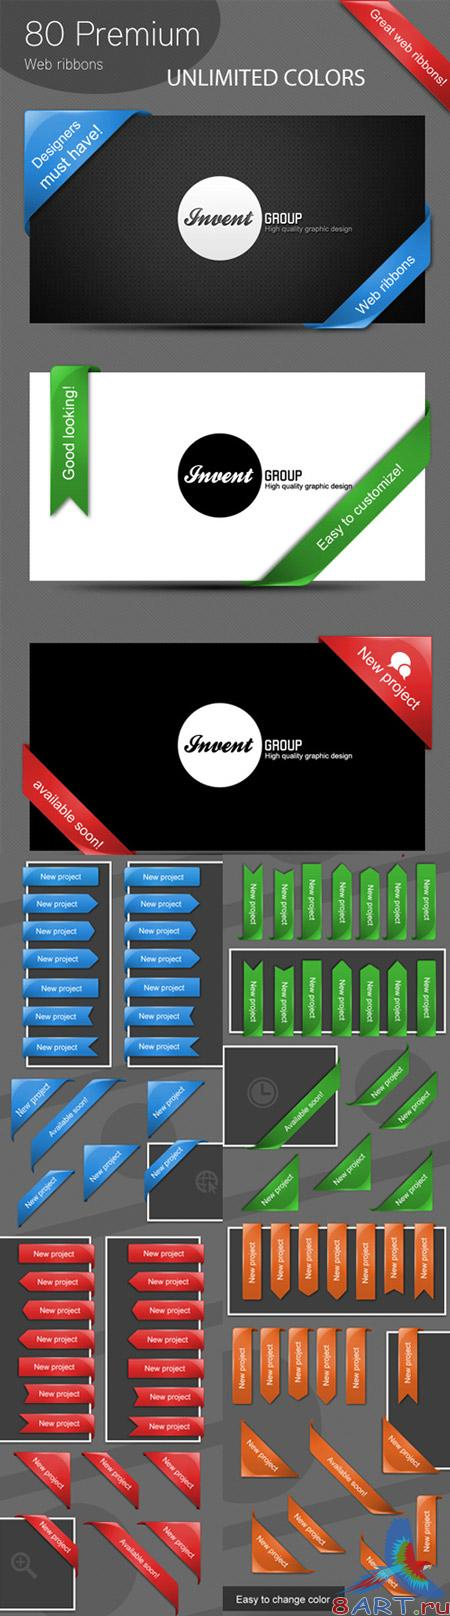 80 Premium Web Ribbons - GraphicRiver